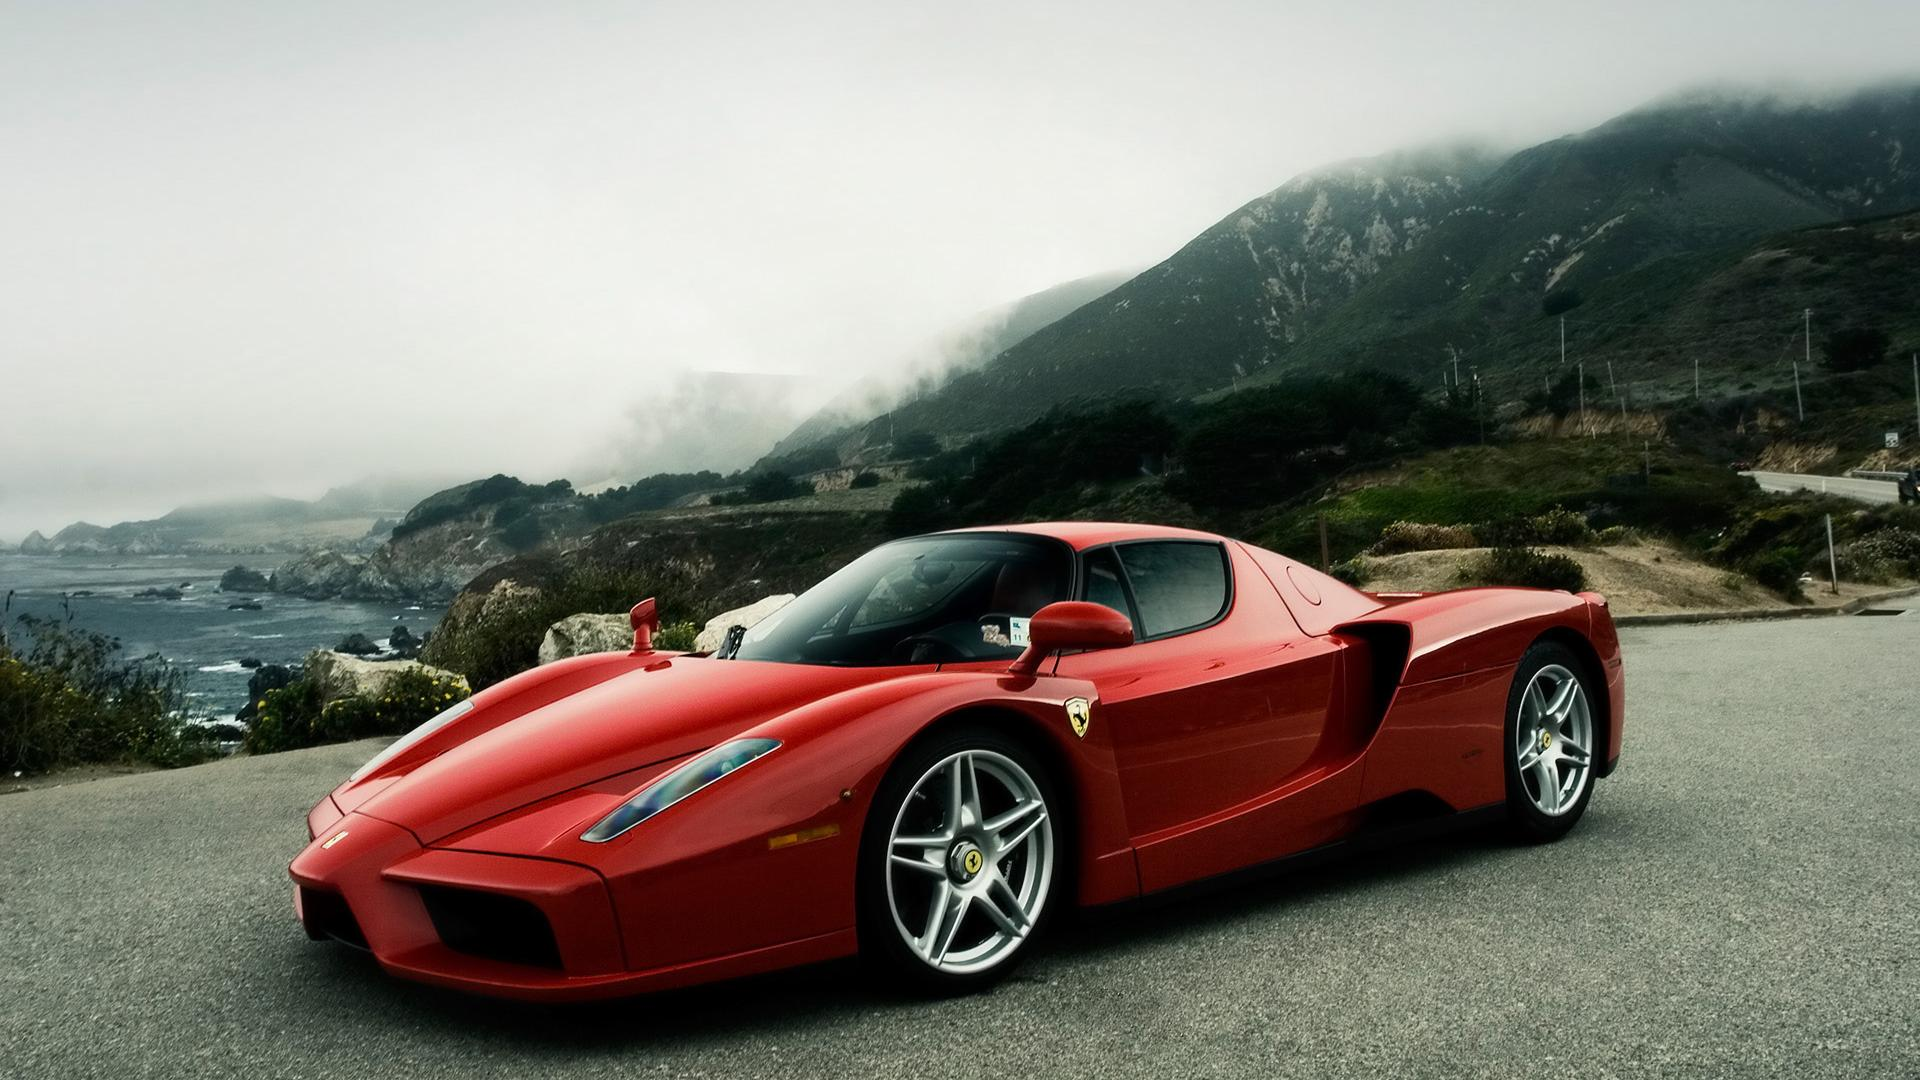 Ferrari Cars Wallpapers Pictures To Pin 1920x1080